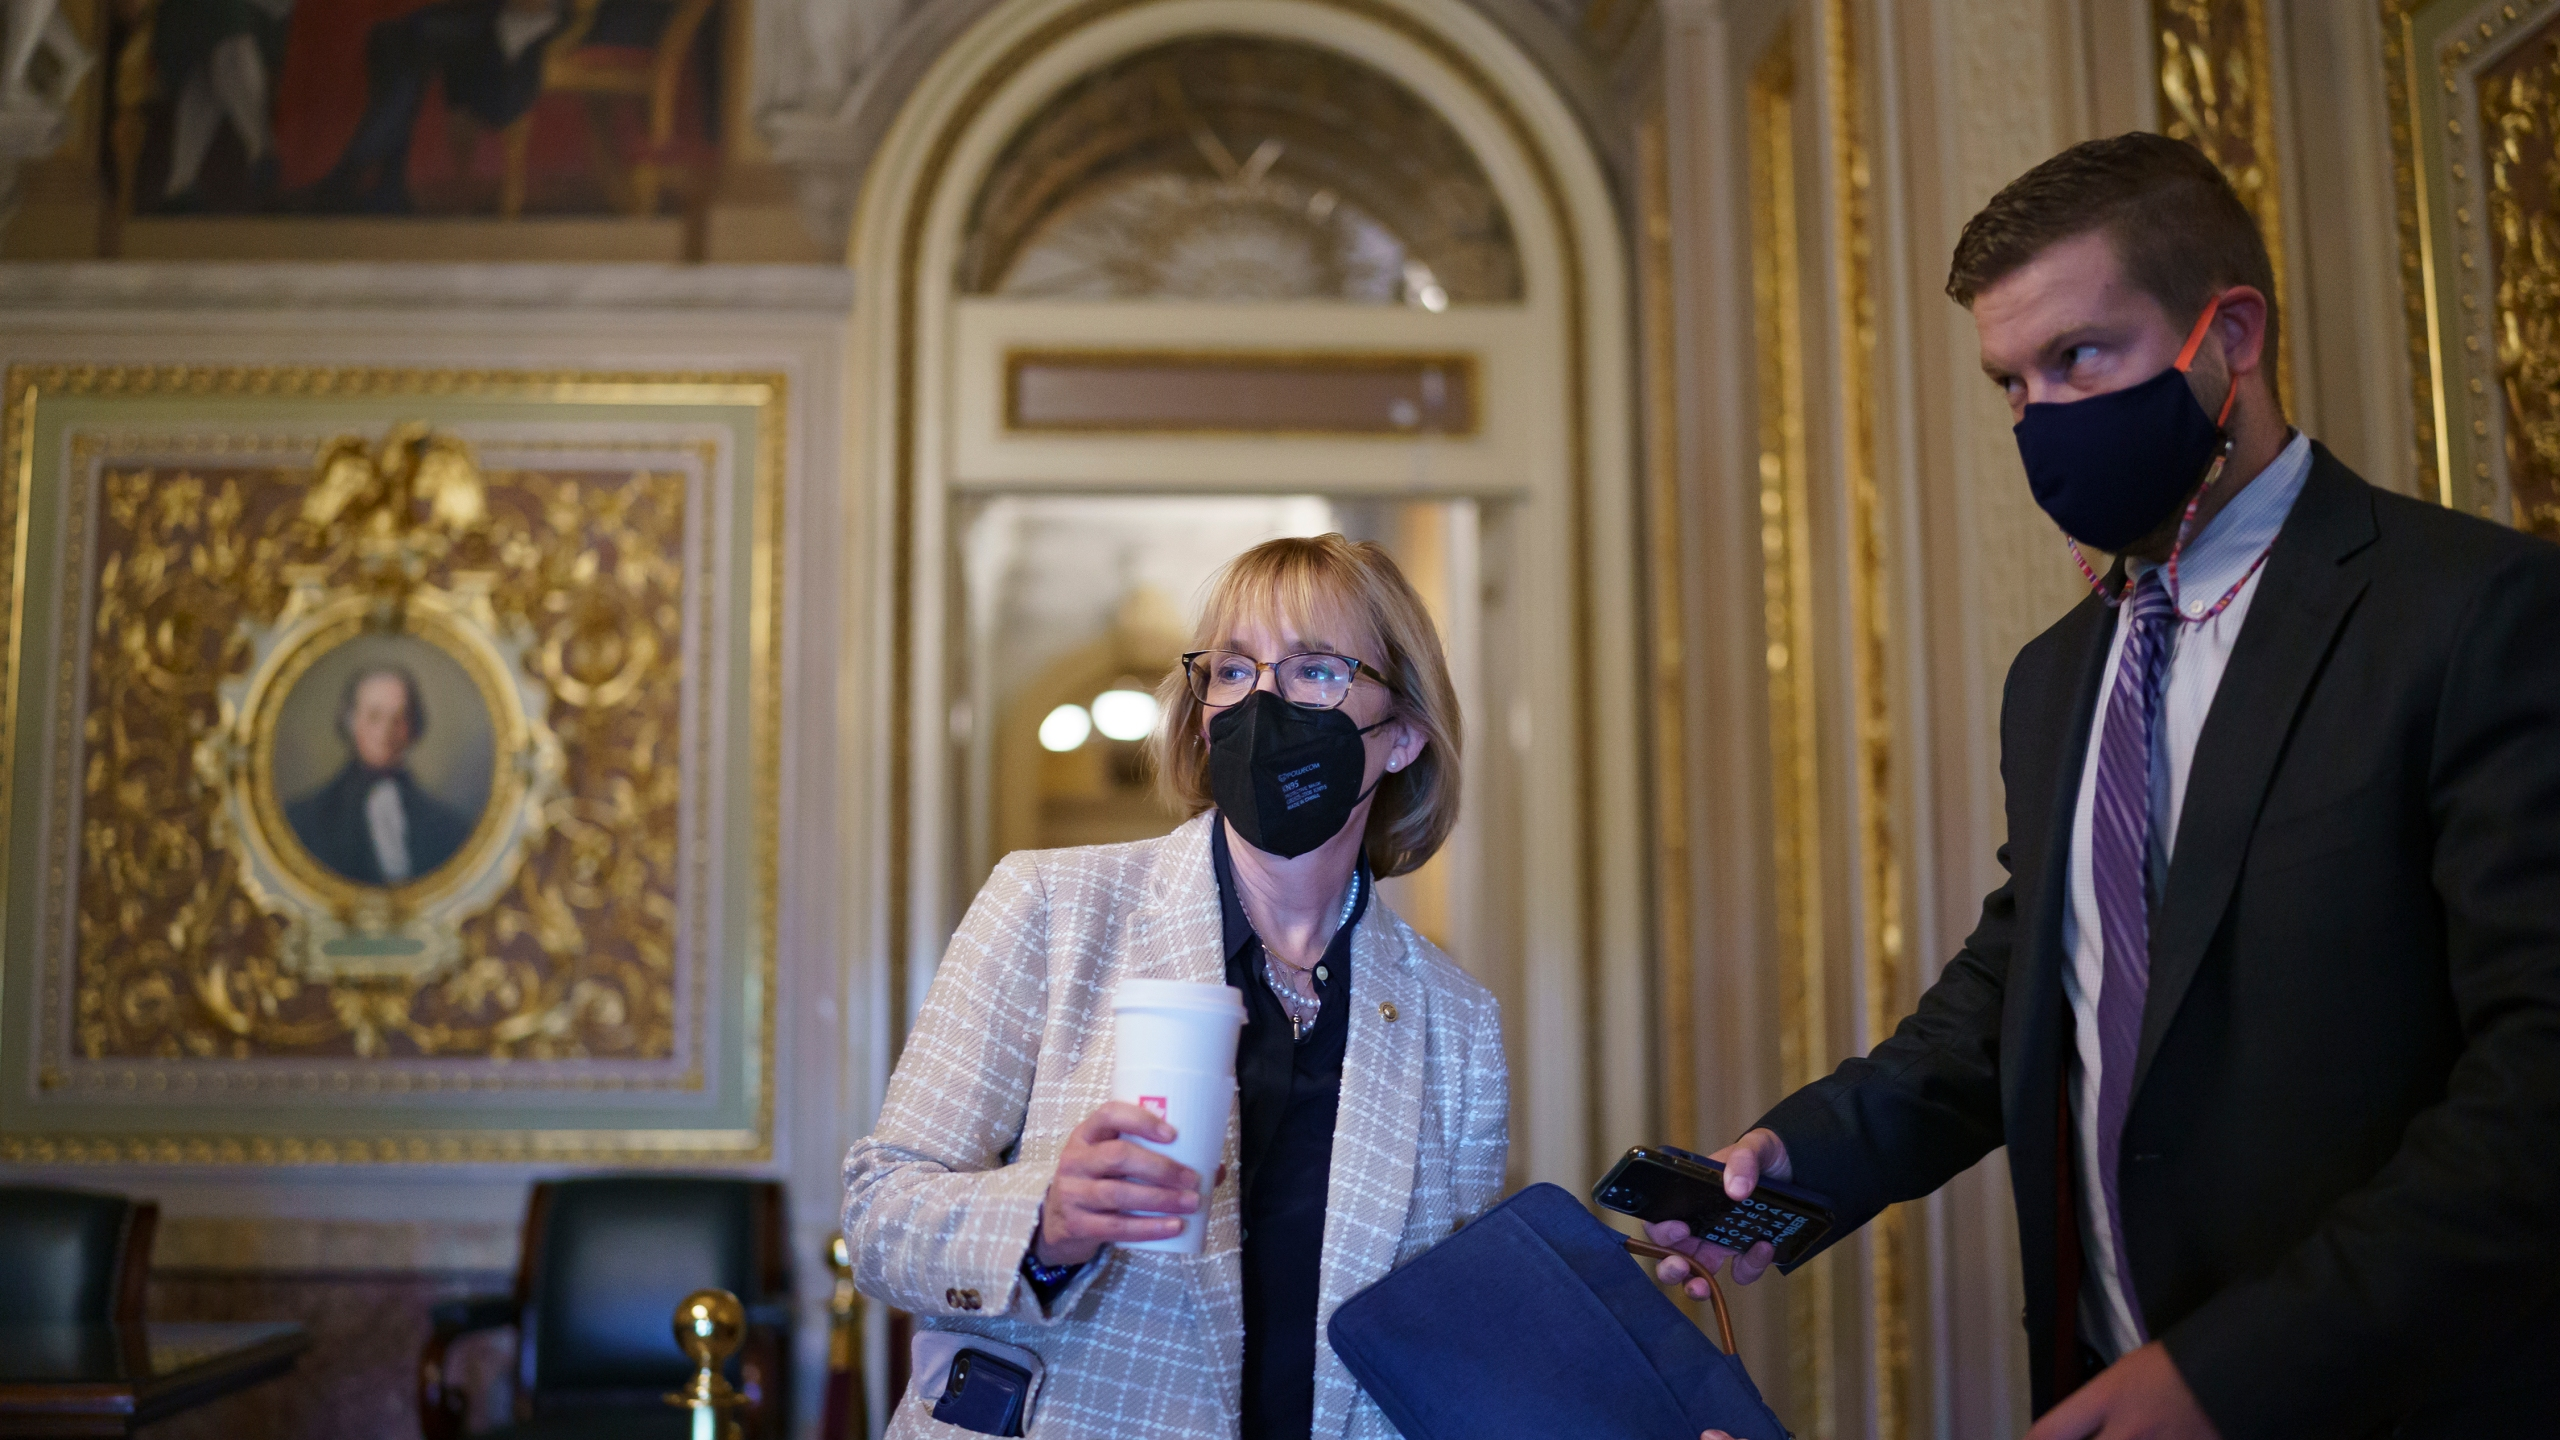 Sen. Maggie Hassan, D-N.H., arrives at the Capitol as the Senate convenes for a rare weekend session on the $1 trillion bipartisan infrastructure bill, at the Capitol in Washington, Saturday, Aug. 7, 2021. (AP Photo/J. Scott Applewhite)